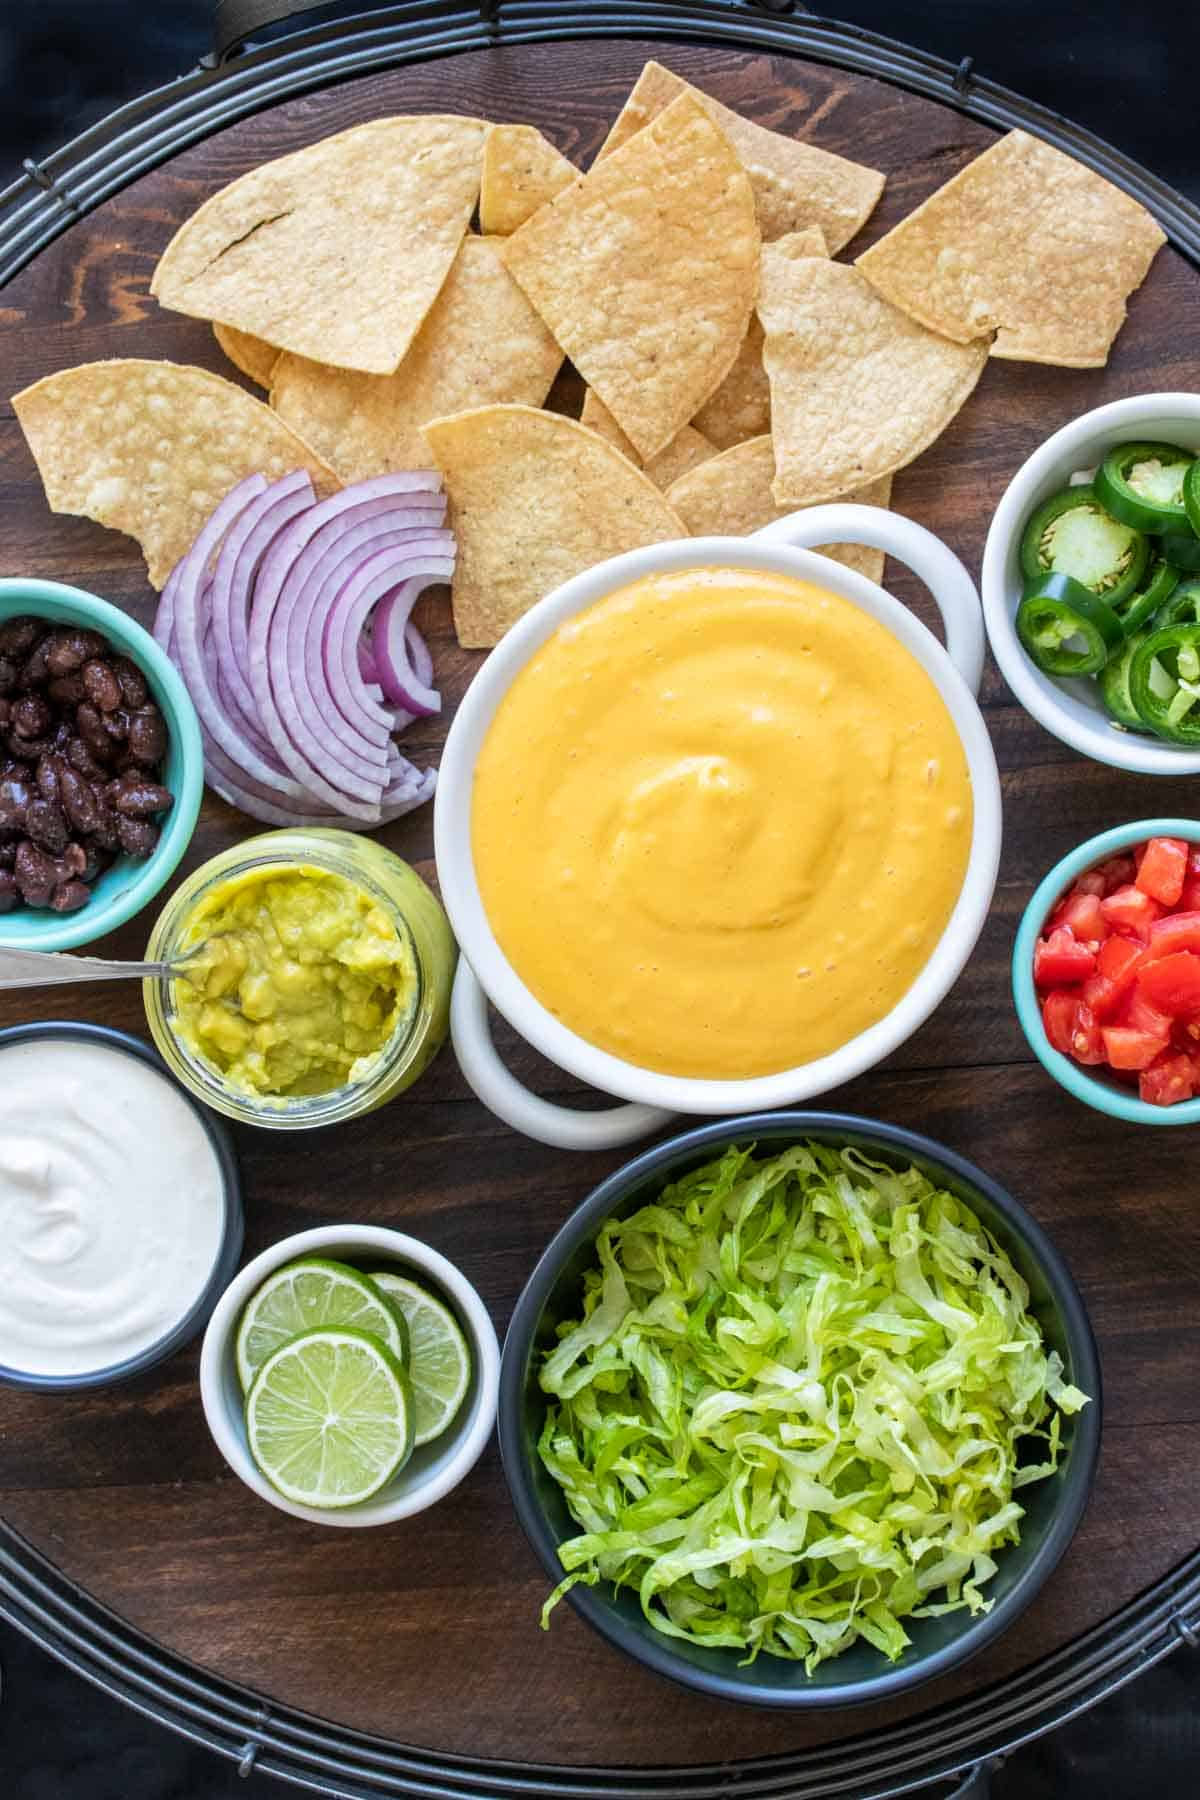 Ingredients for nachos in bowls on a wooden tray